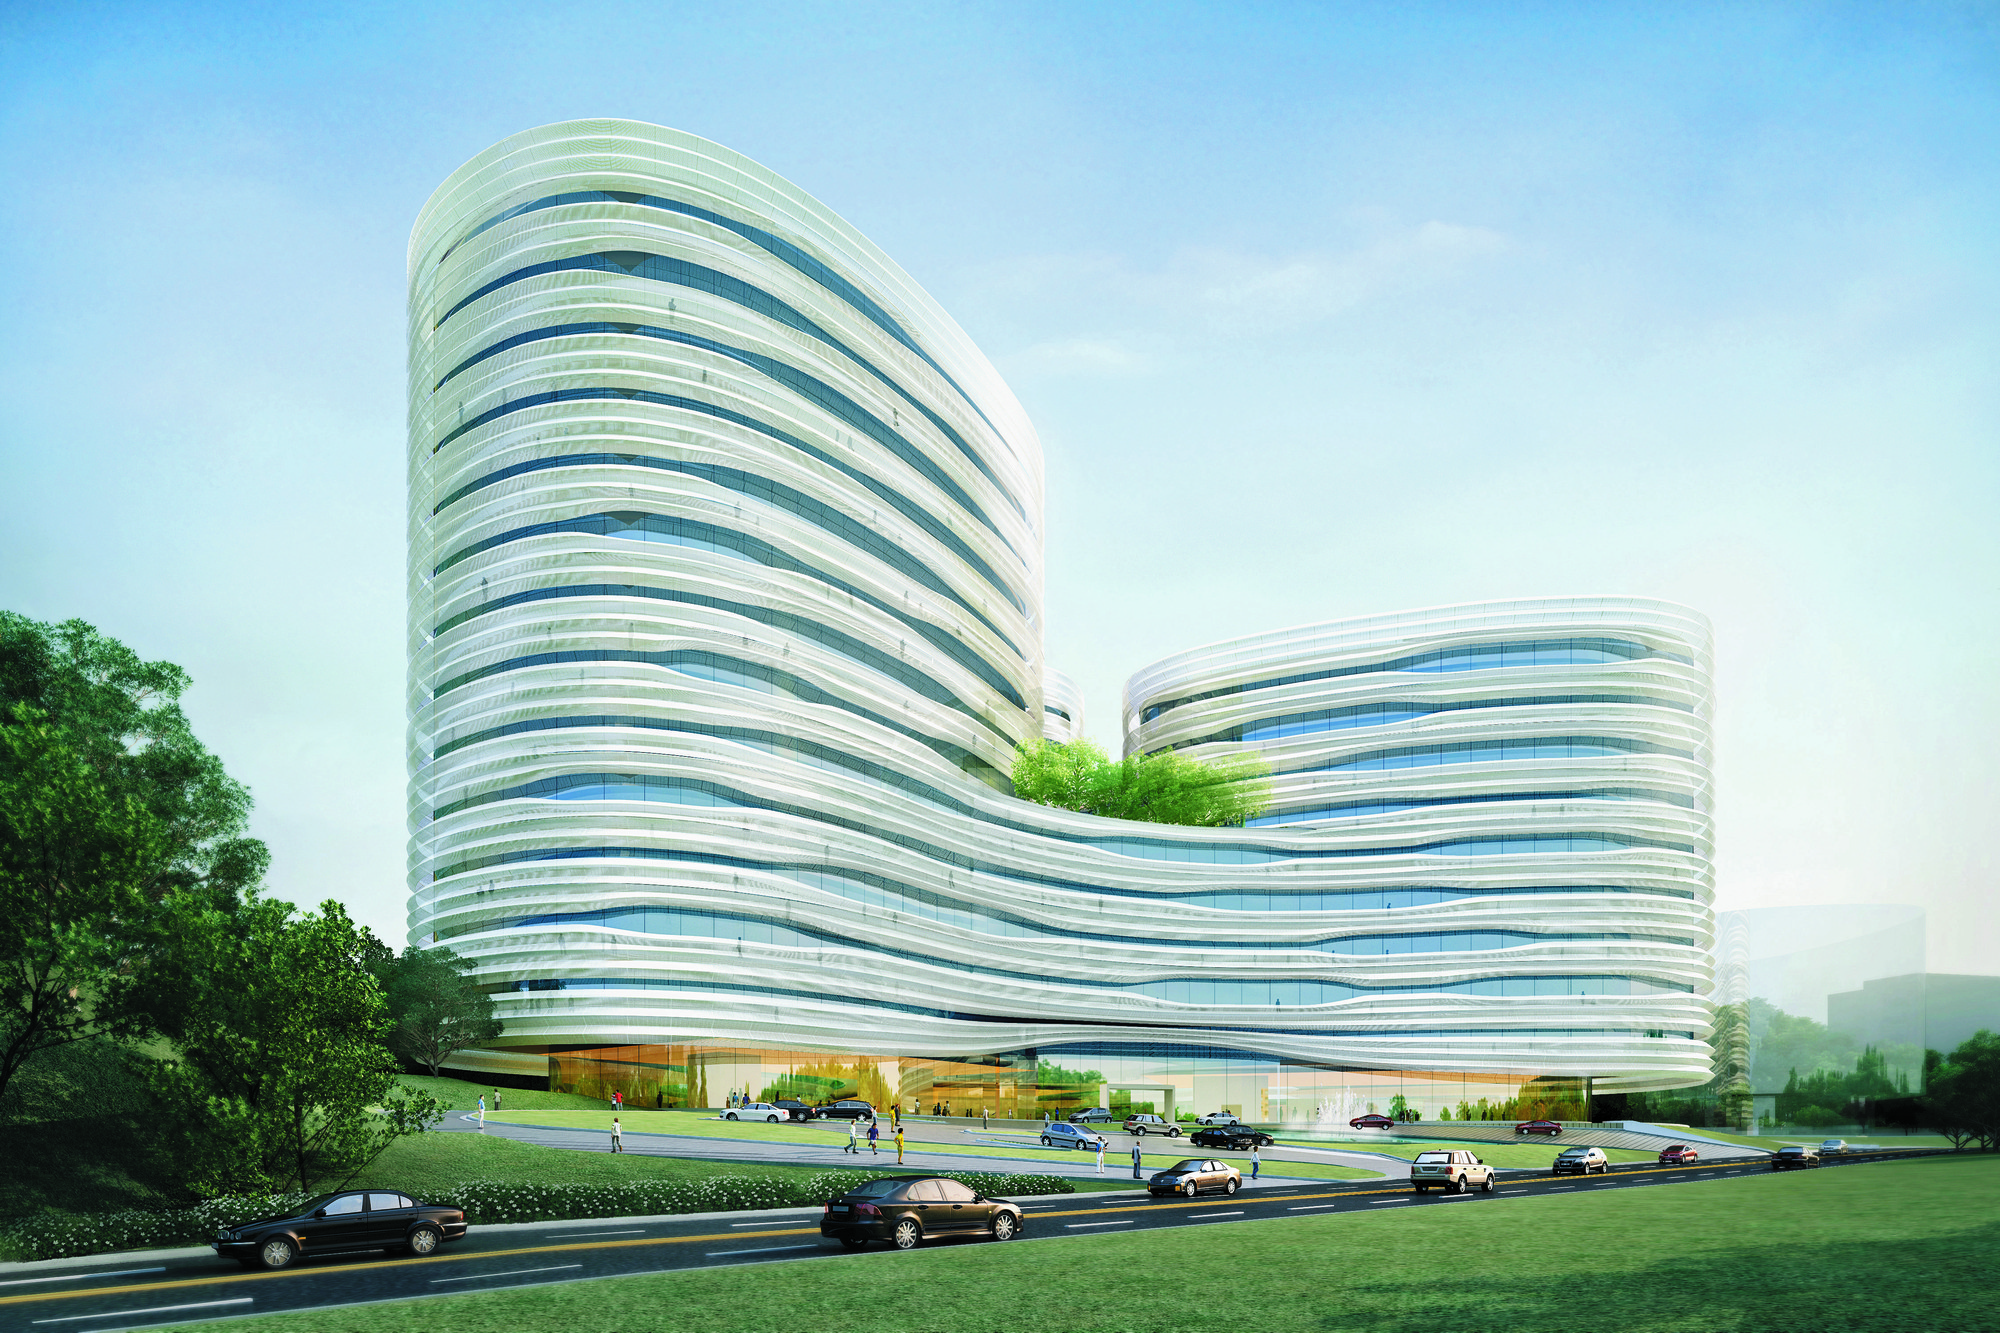 Cj Cheiljedang Research And Development Center Seoul South Korea Exterior Rendering From Southwest